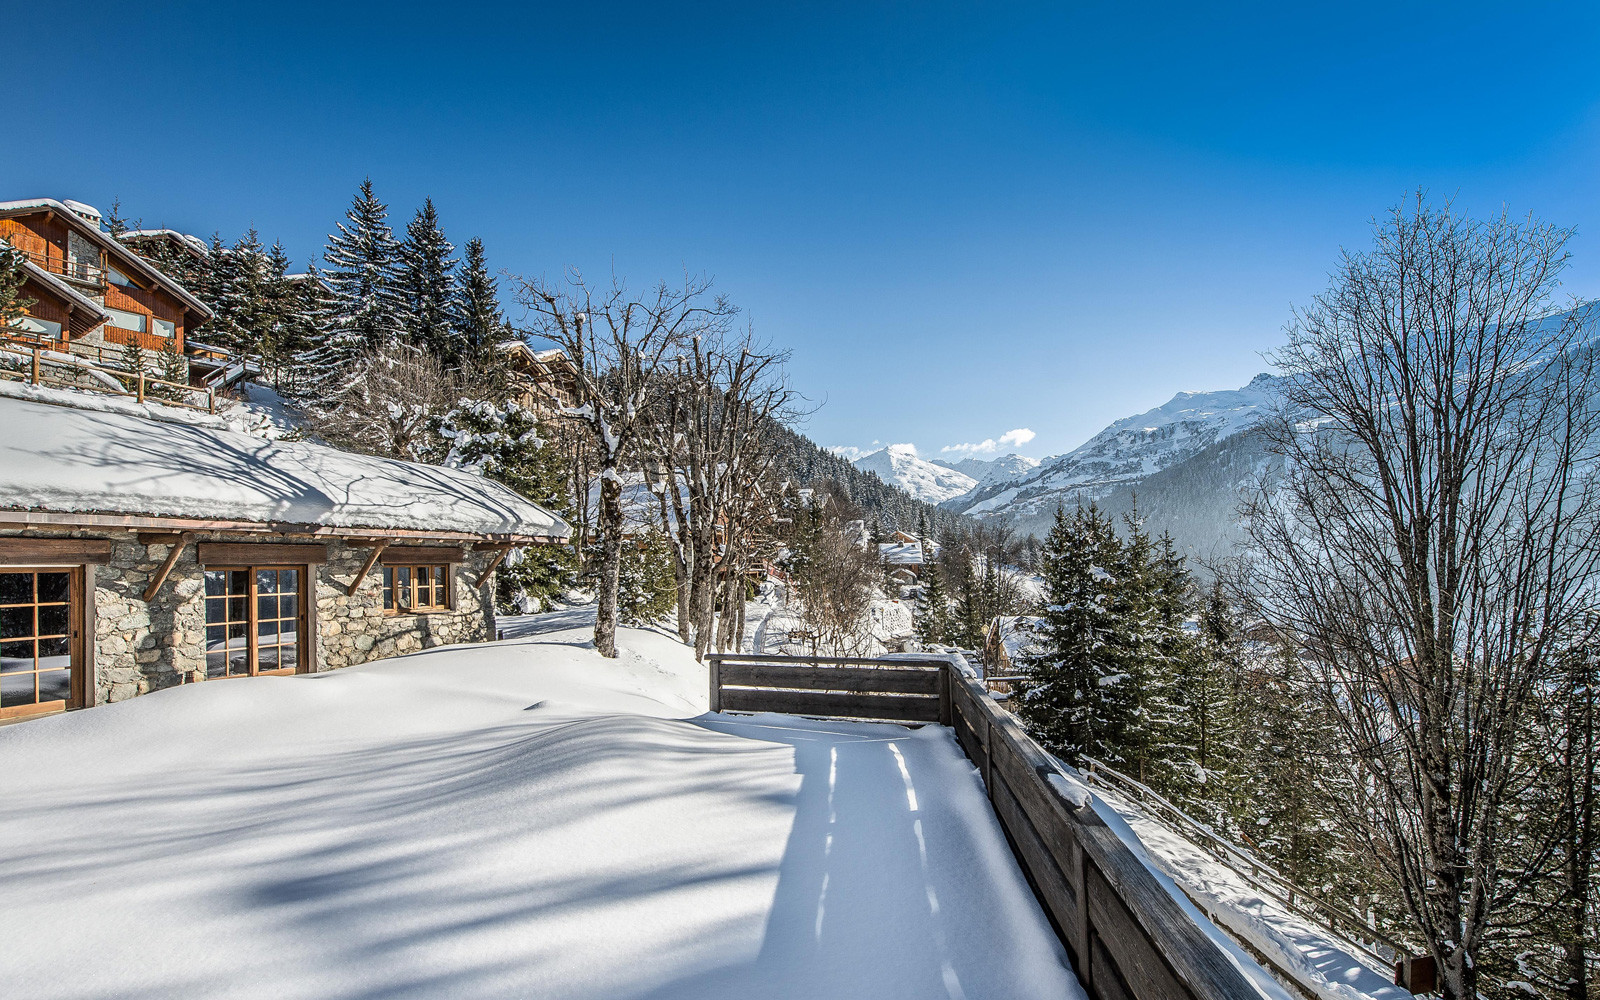 Kings-avenue-méribel-snow-sauna-hammam-swimming-pool-childfriendly-cinema-kids-playroom-games-room-fireplace-spa-ski-room-boot-heaters-terrace-garden-area-méribel-005